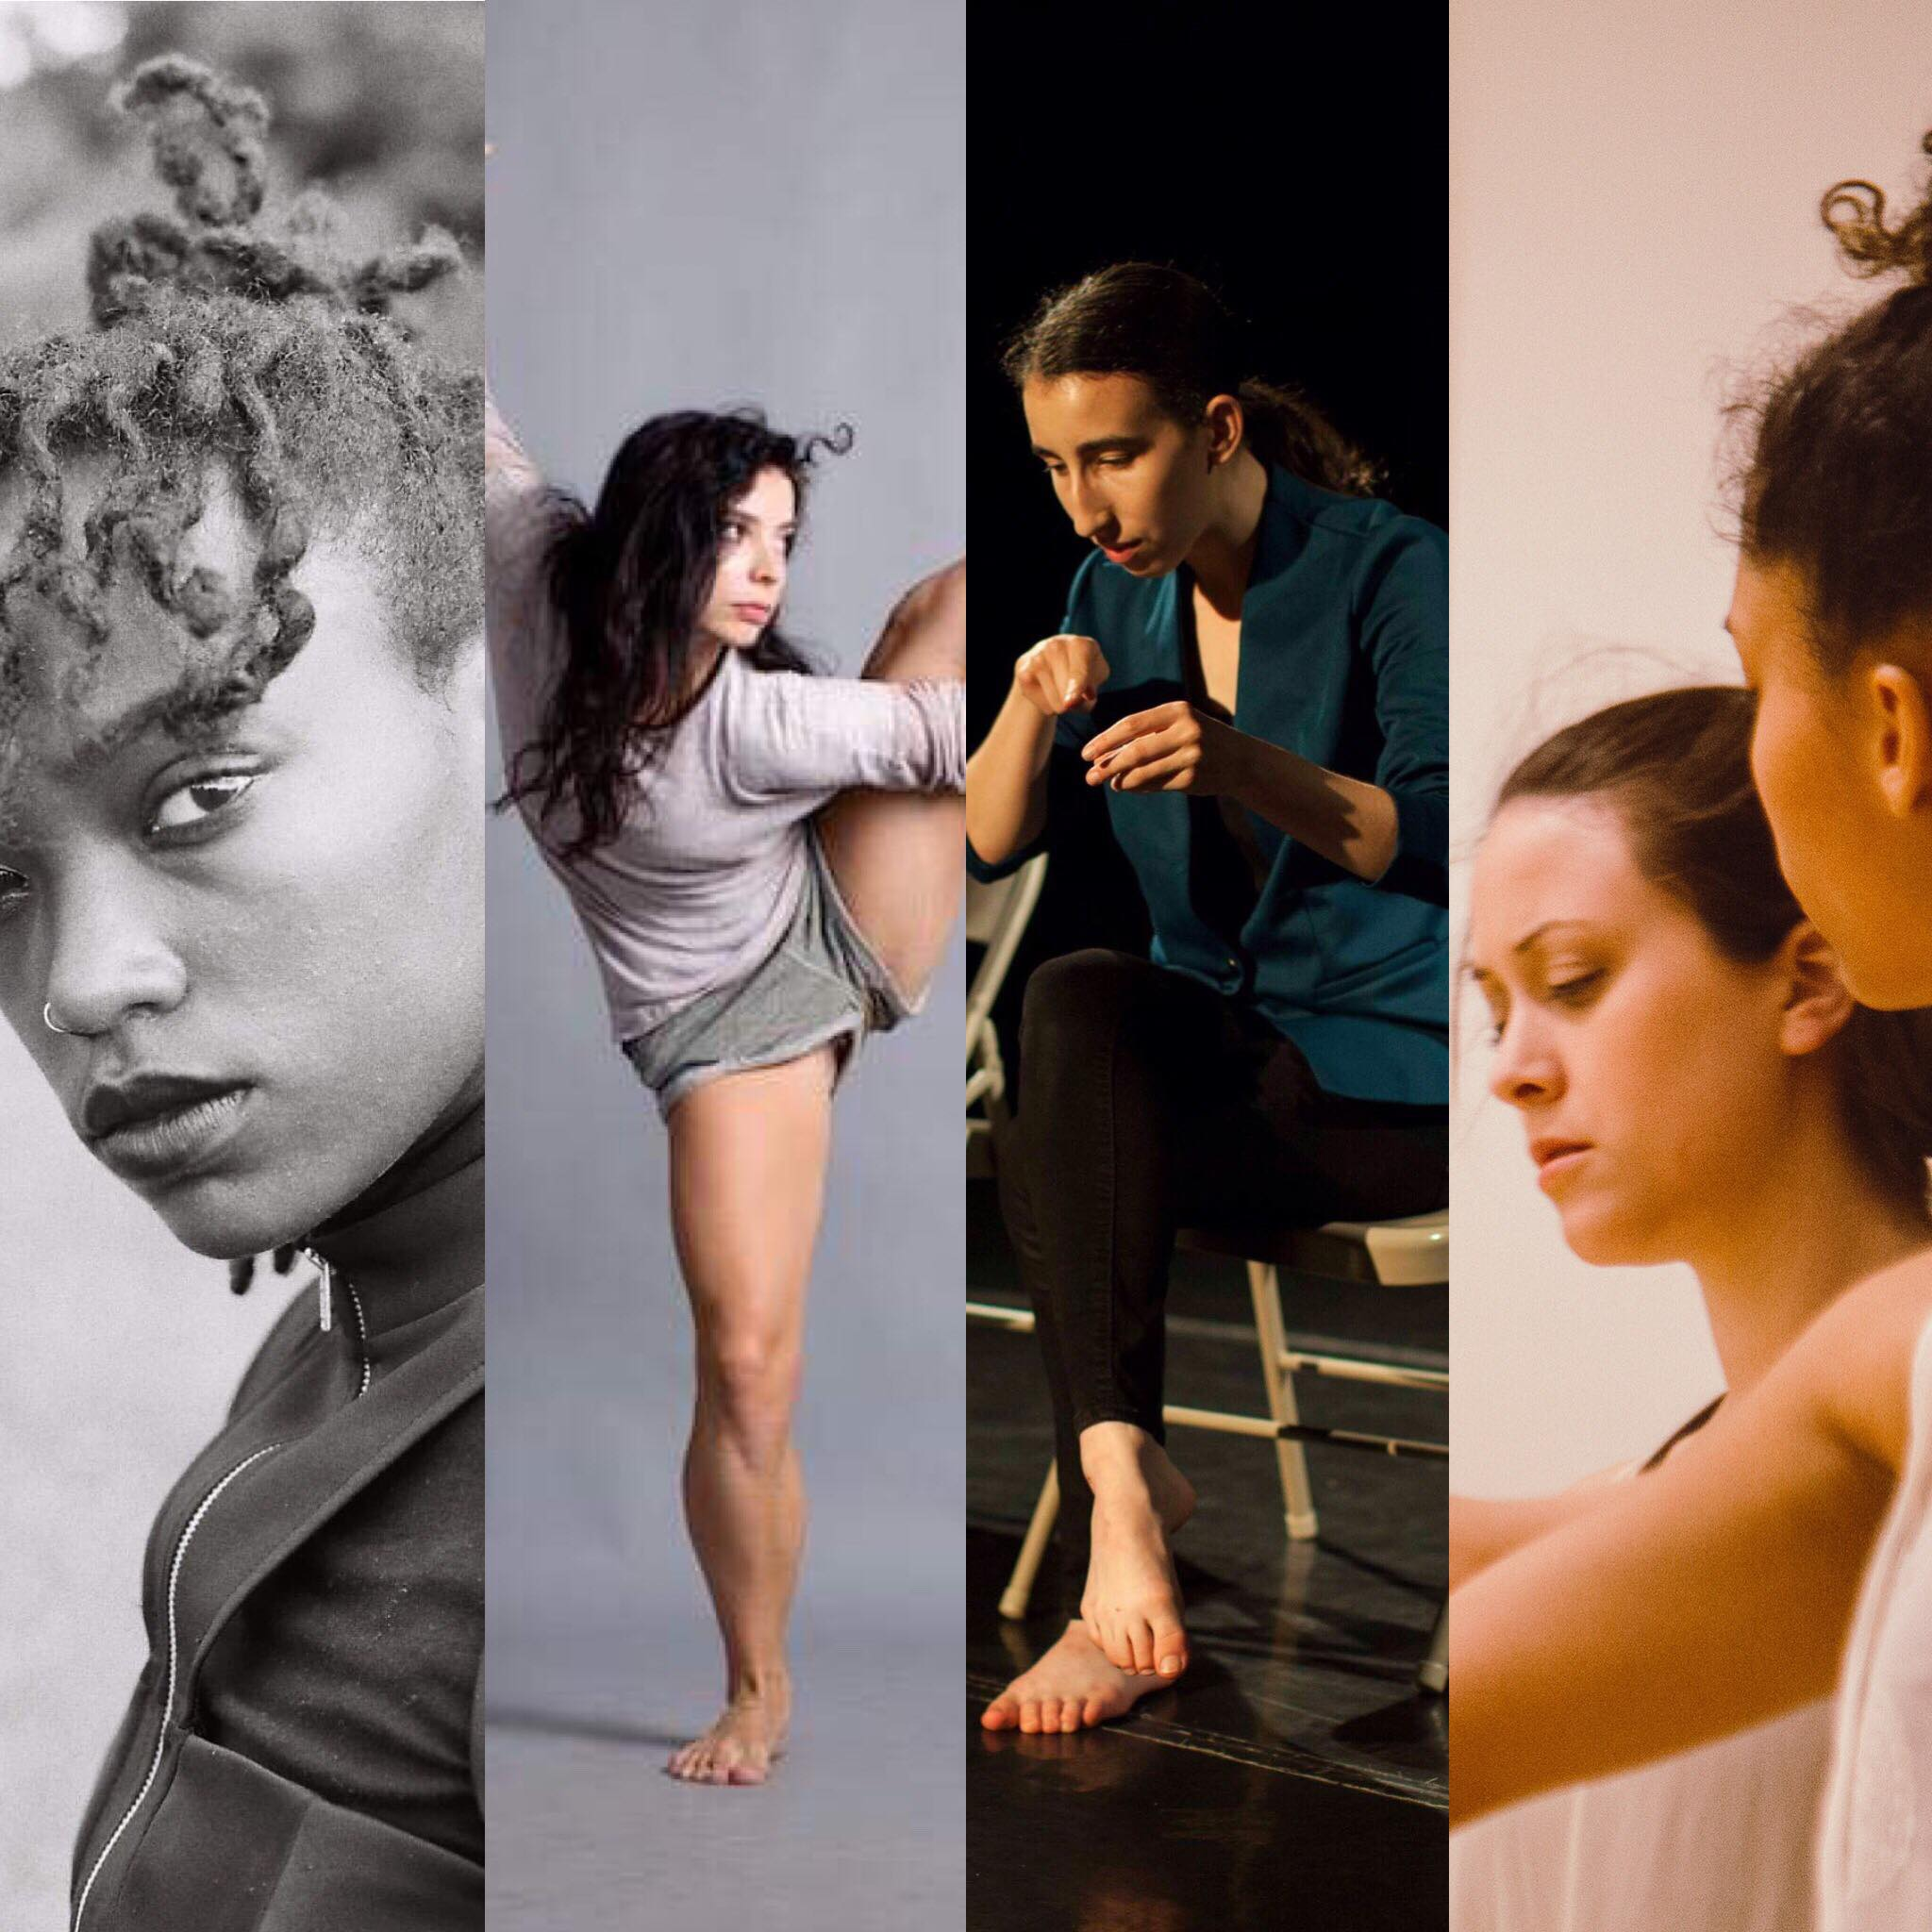 Homegrown Choreographers - Pictured: Amanda Edwards, photo by Jasmine Callis; Diane Auriol of Mollet Contemporary Ballet, Mariah Eastman, photo by Maiya Elliot, KARAR DANCE COMPANY, photo by Brandon Davis